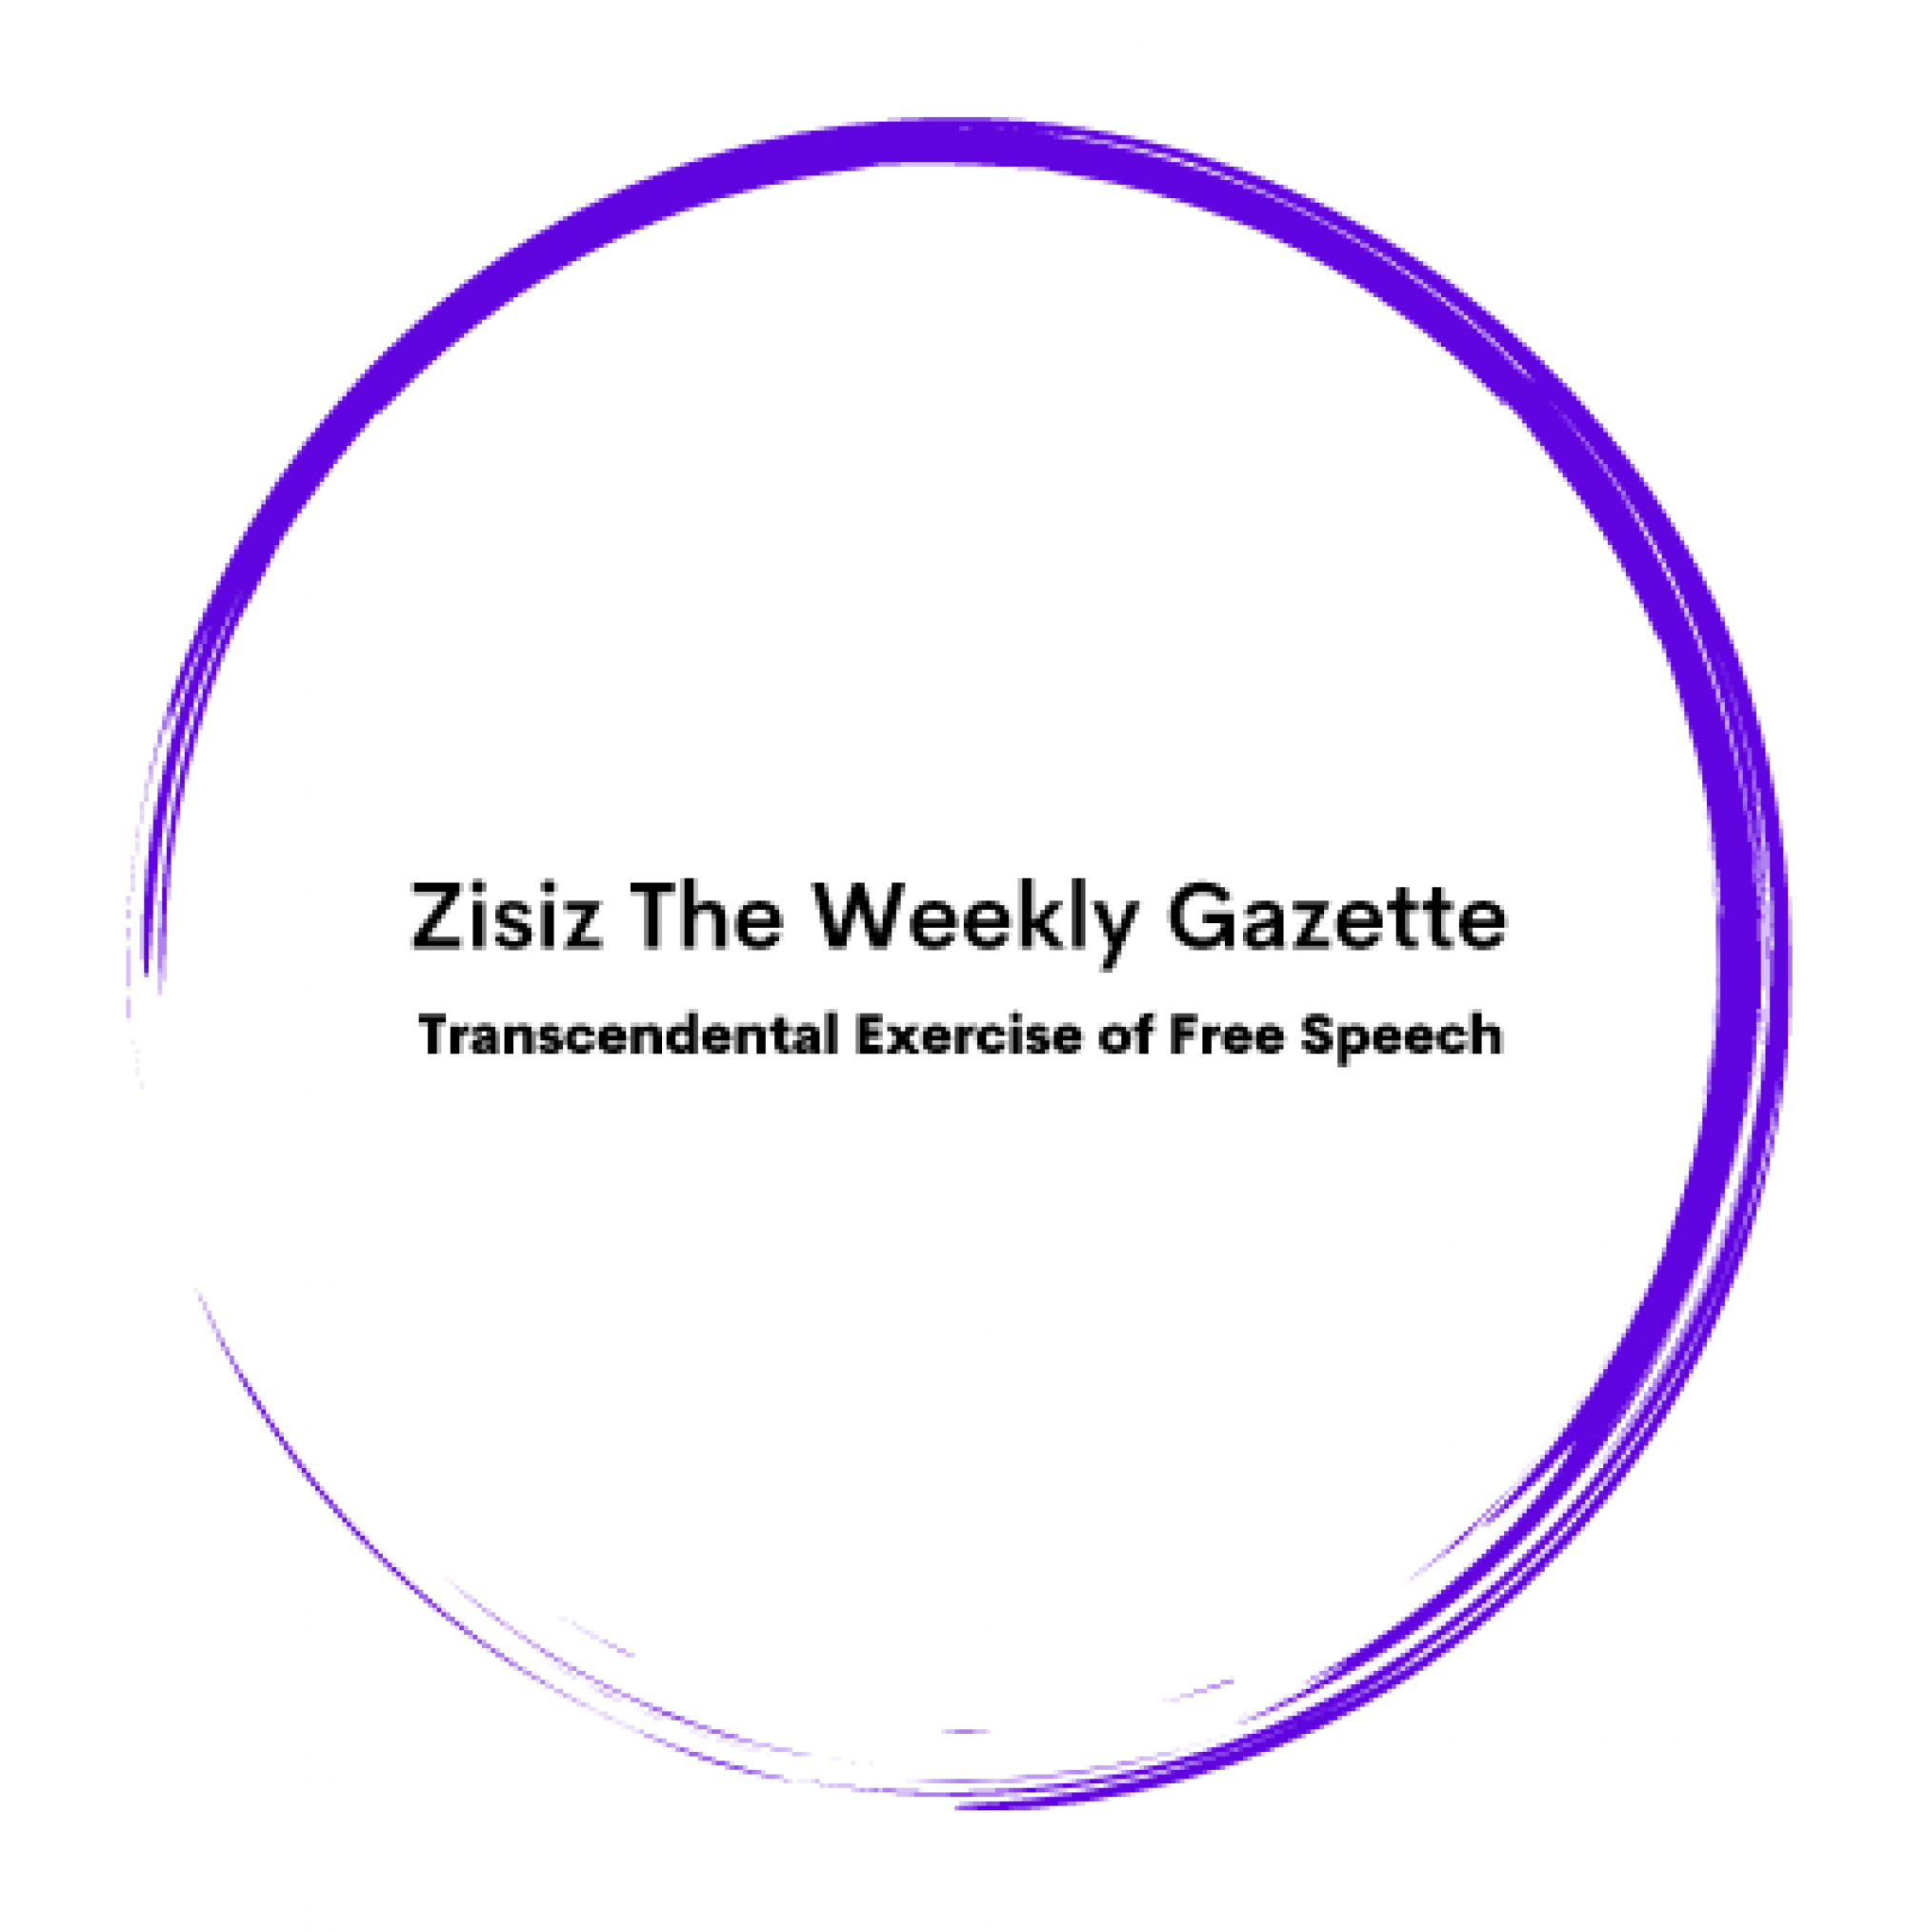 Zisiz the Weekly Gazette